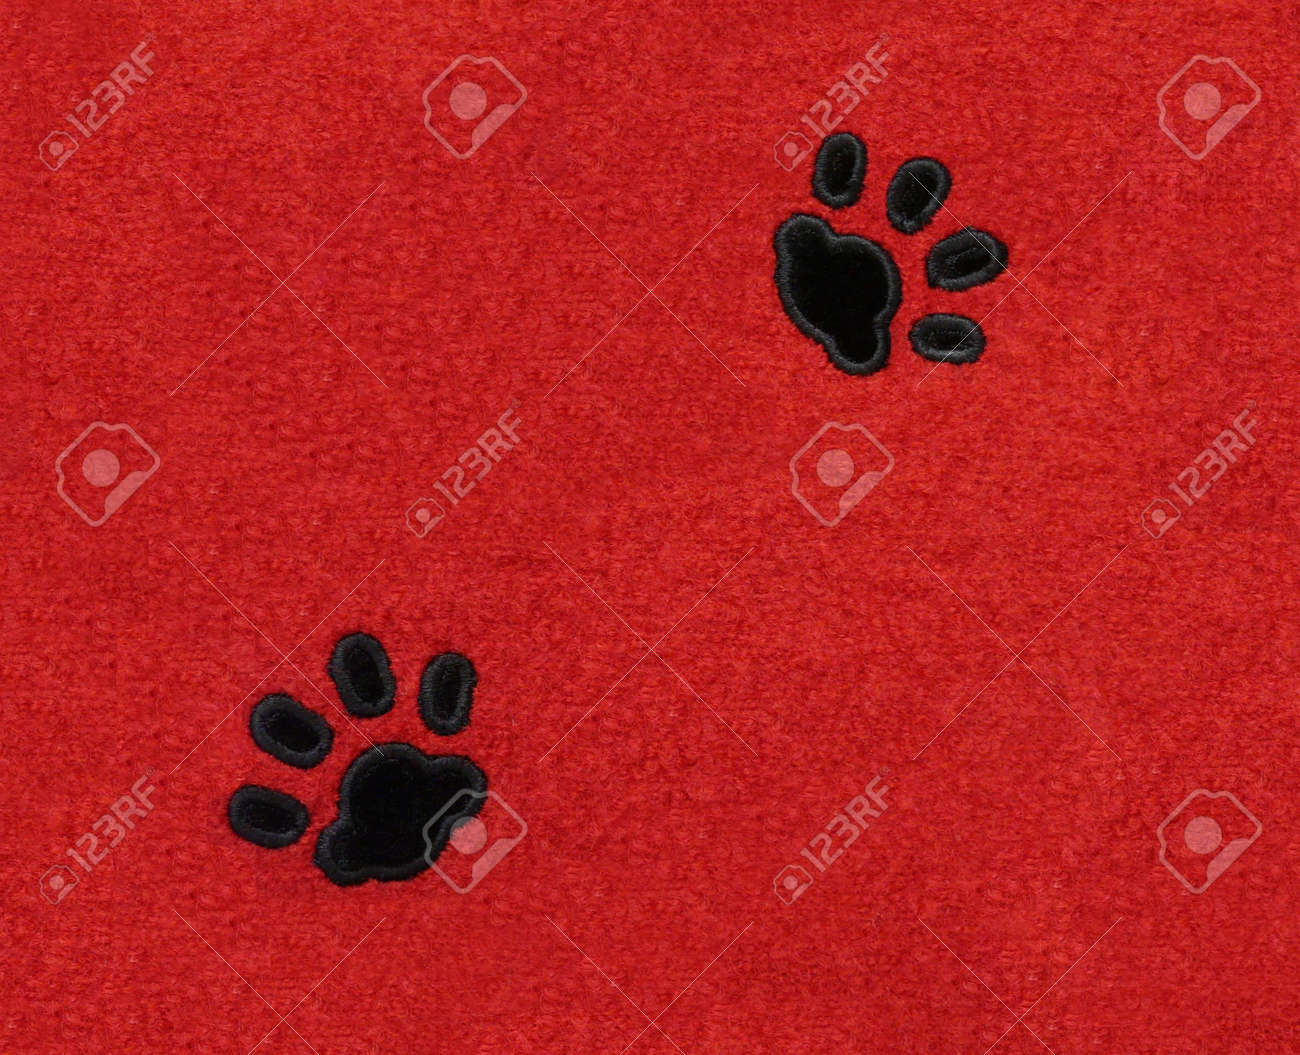 Two black velvet pawprints of a cat on red rectangular fabric. Stock Photo - 7093031